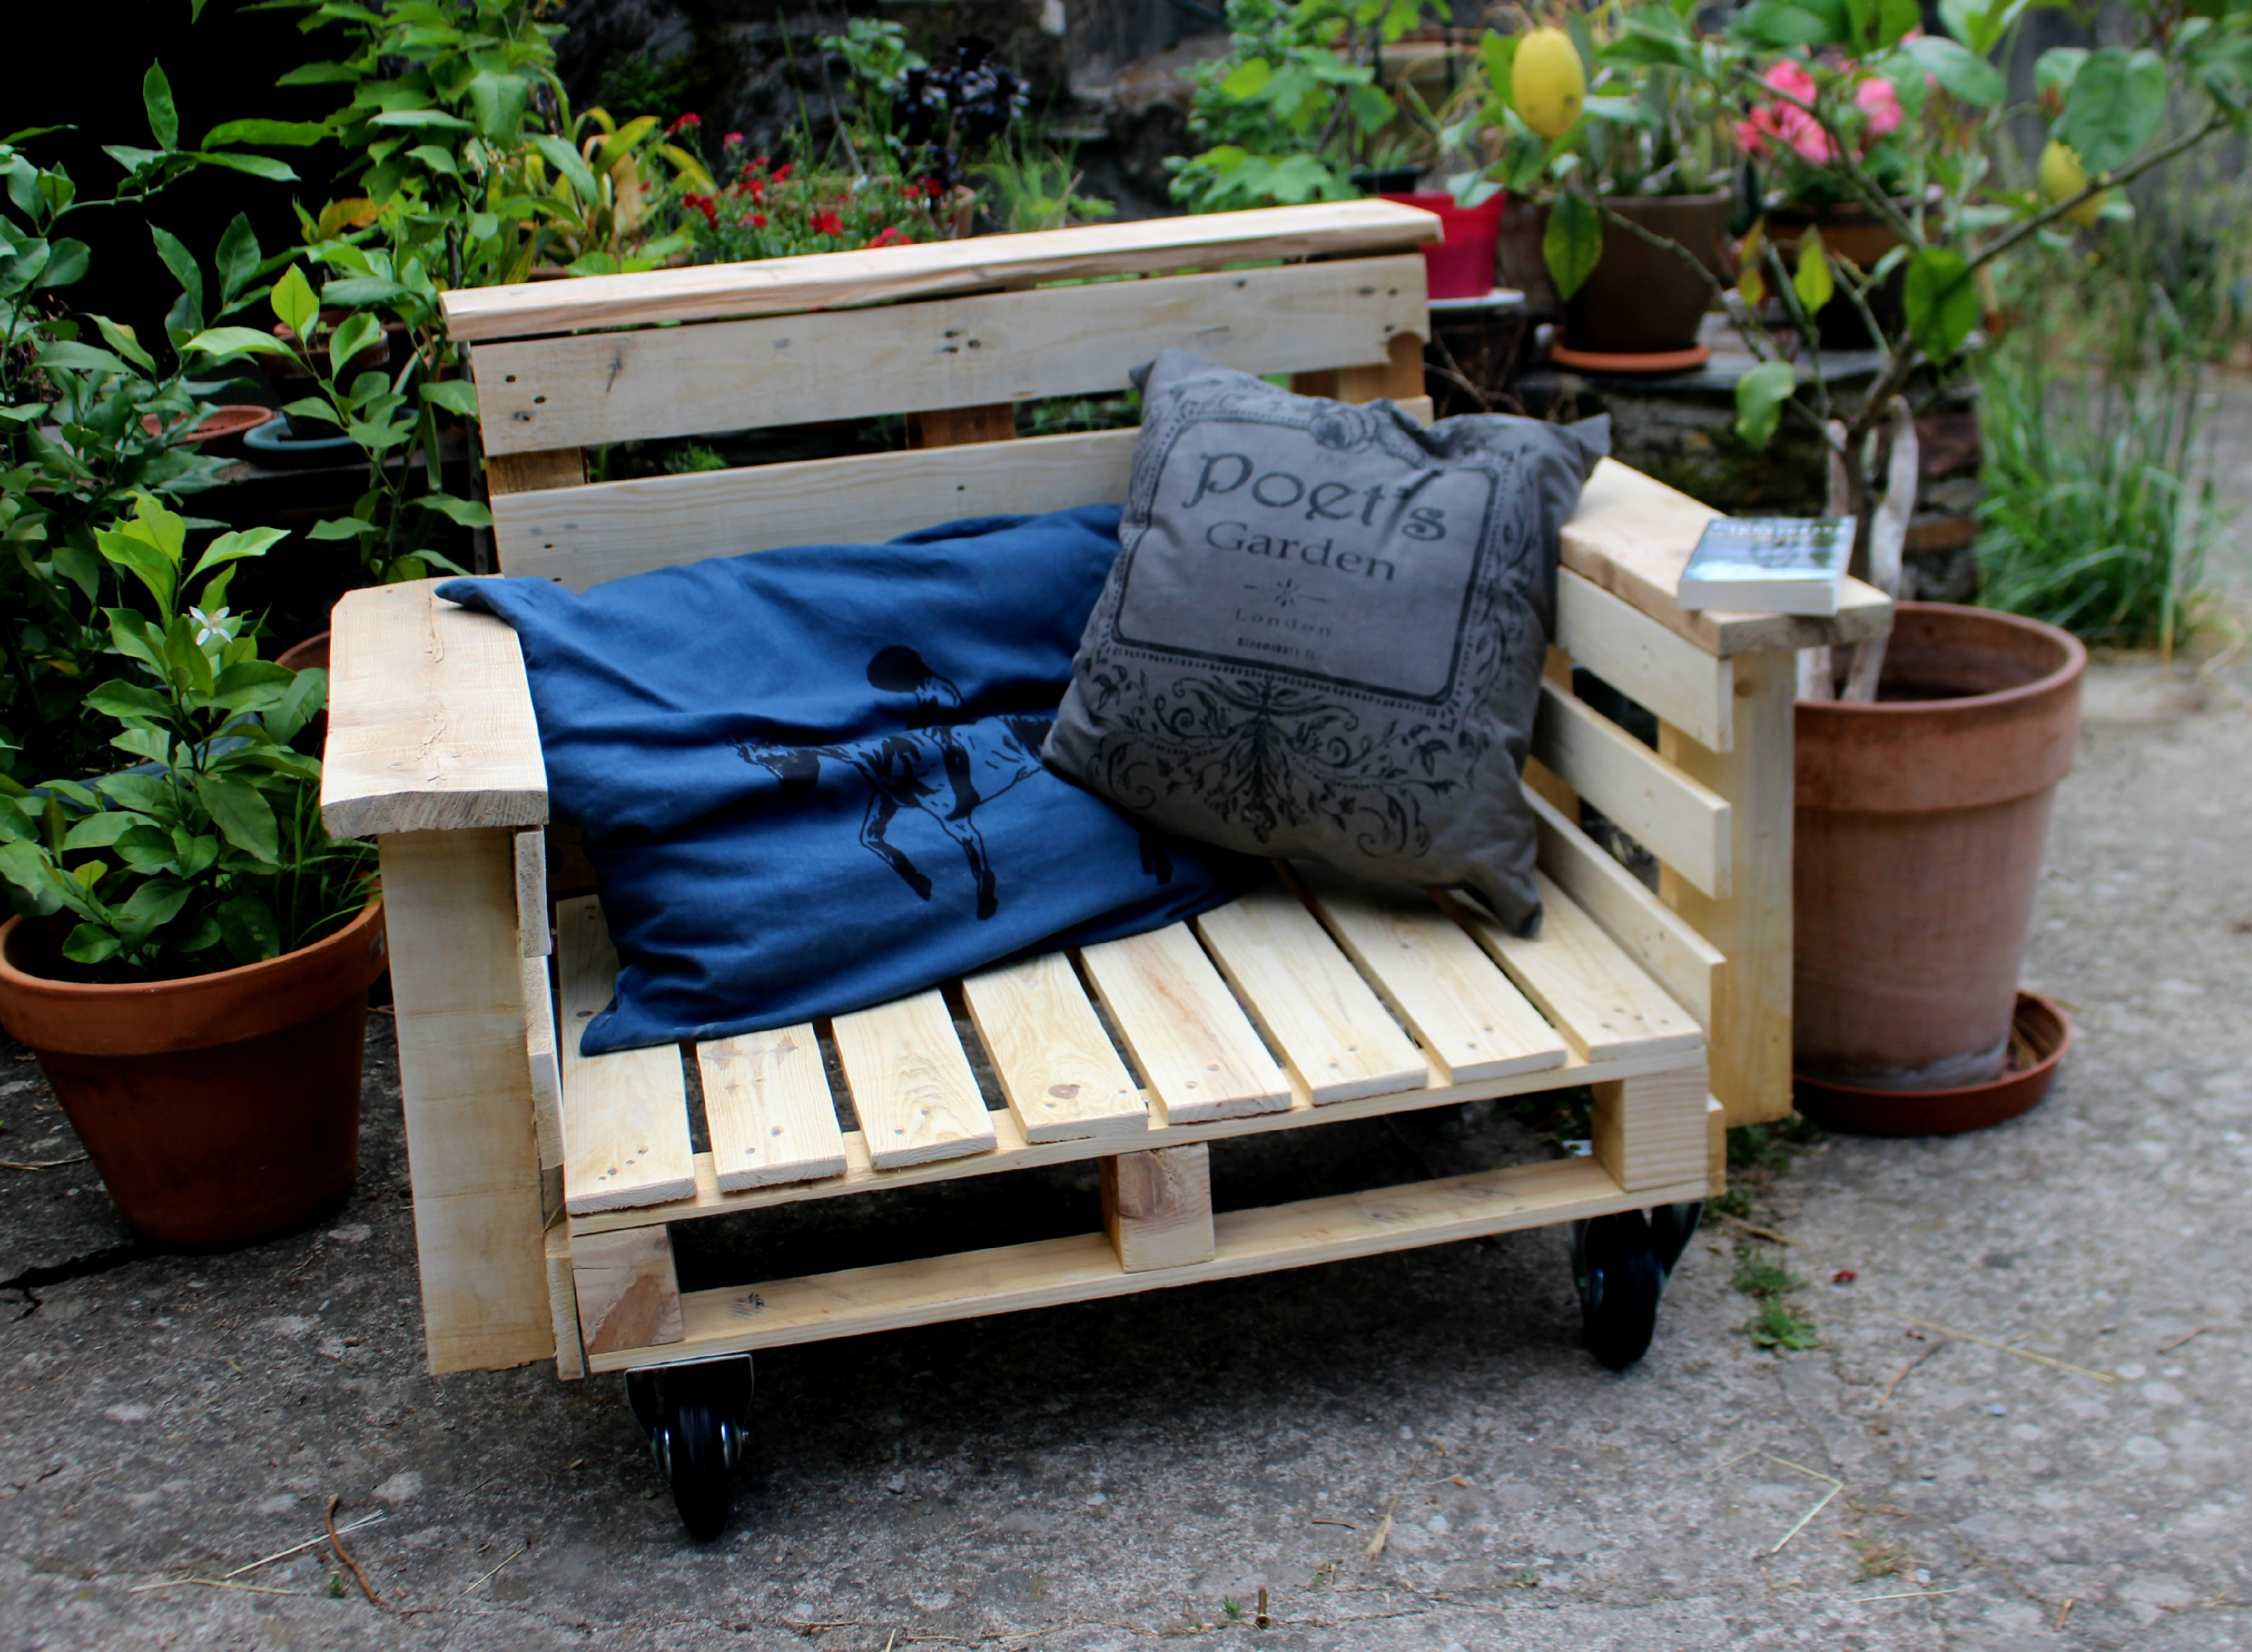 diy fauteuil outdoor et oui c est possible woodhappen. Black Bedroom Furniture Sets. Home Design Ideas